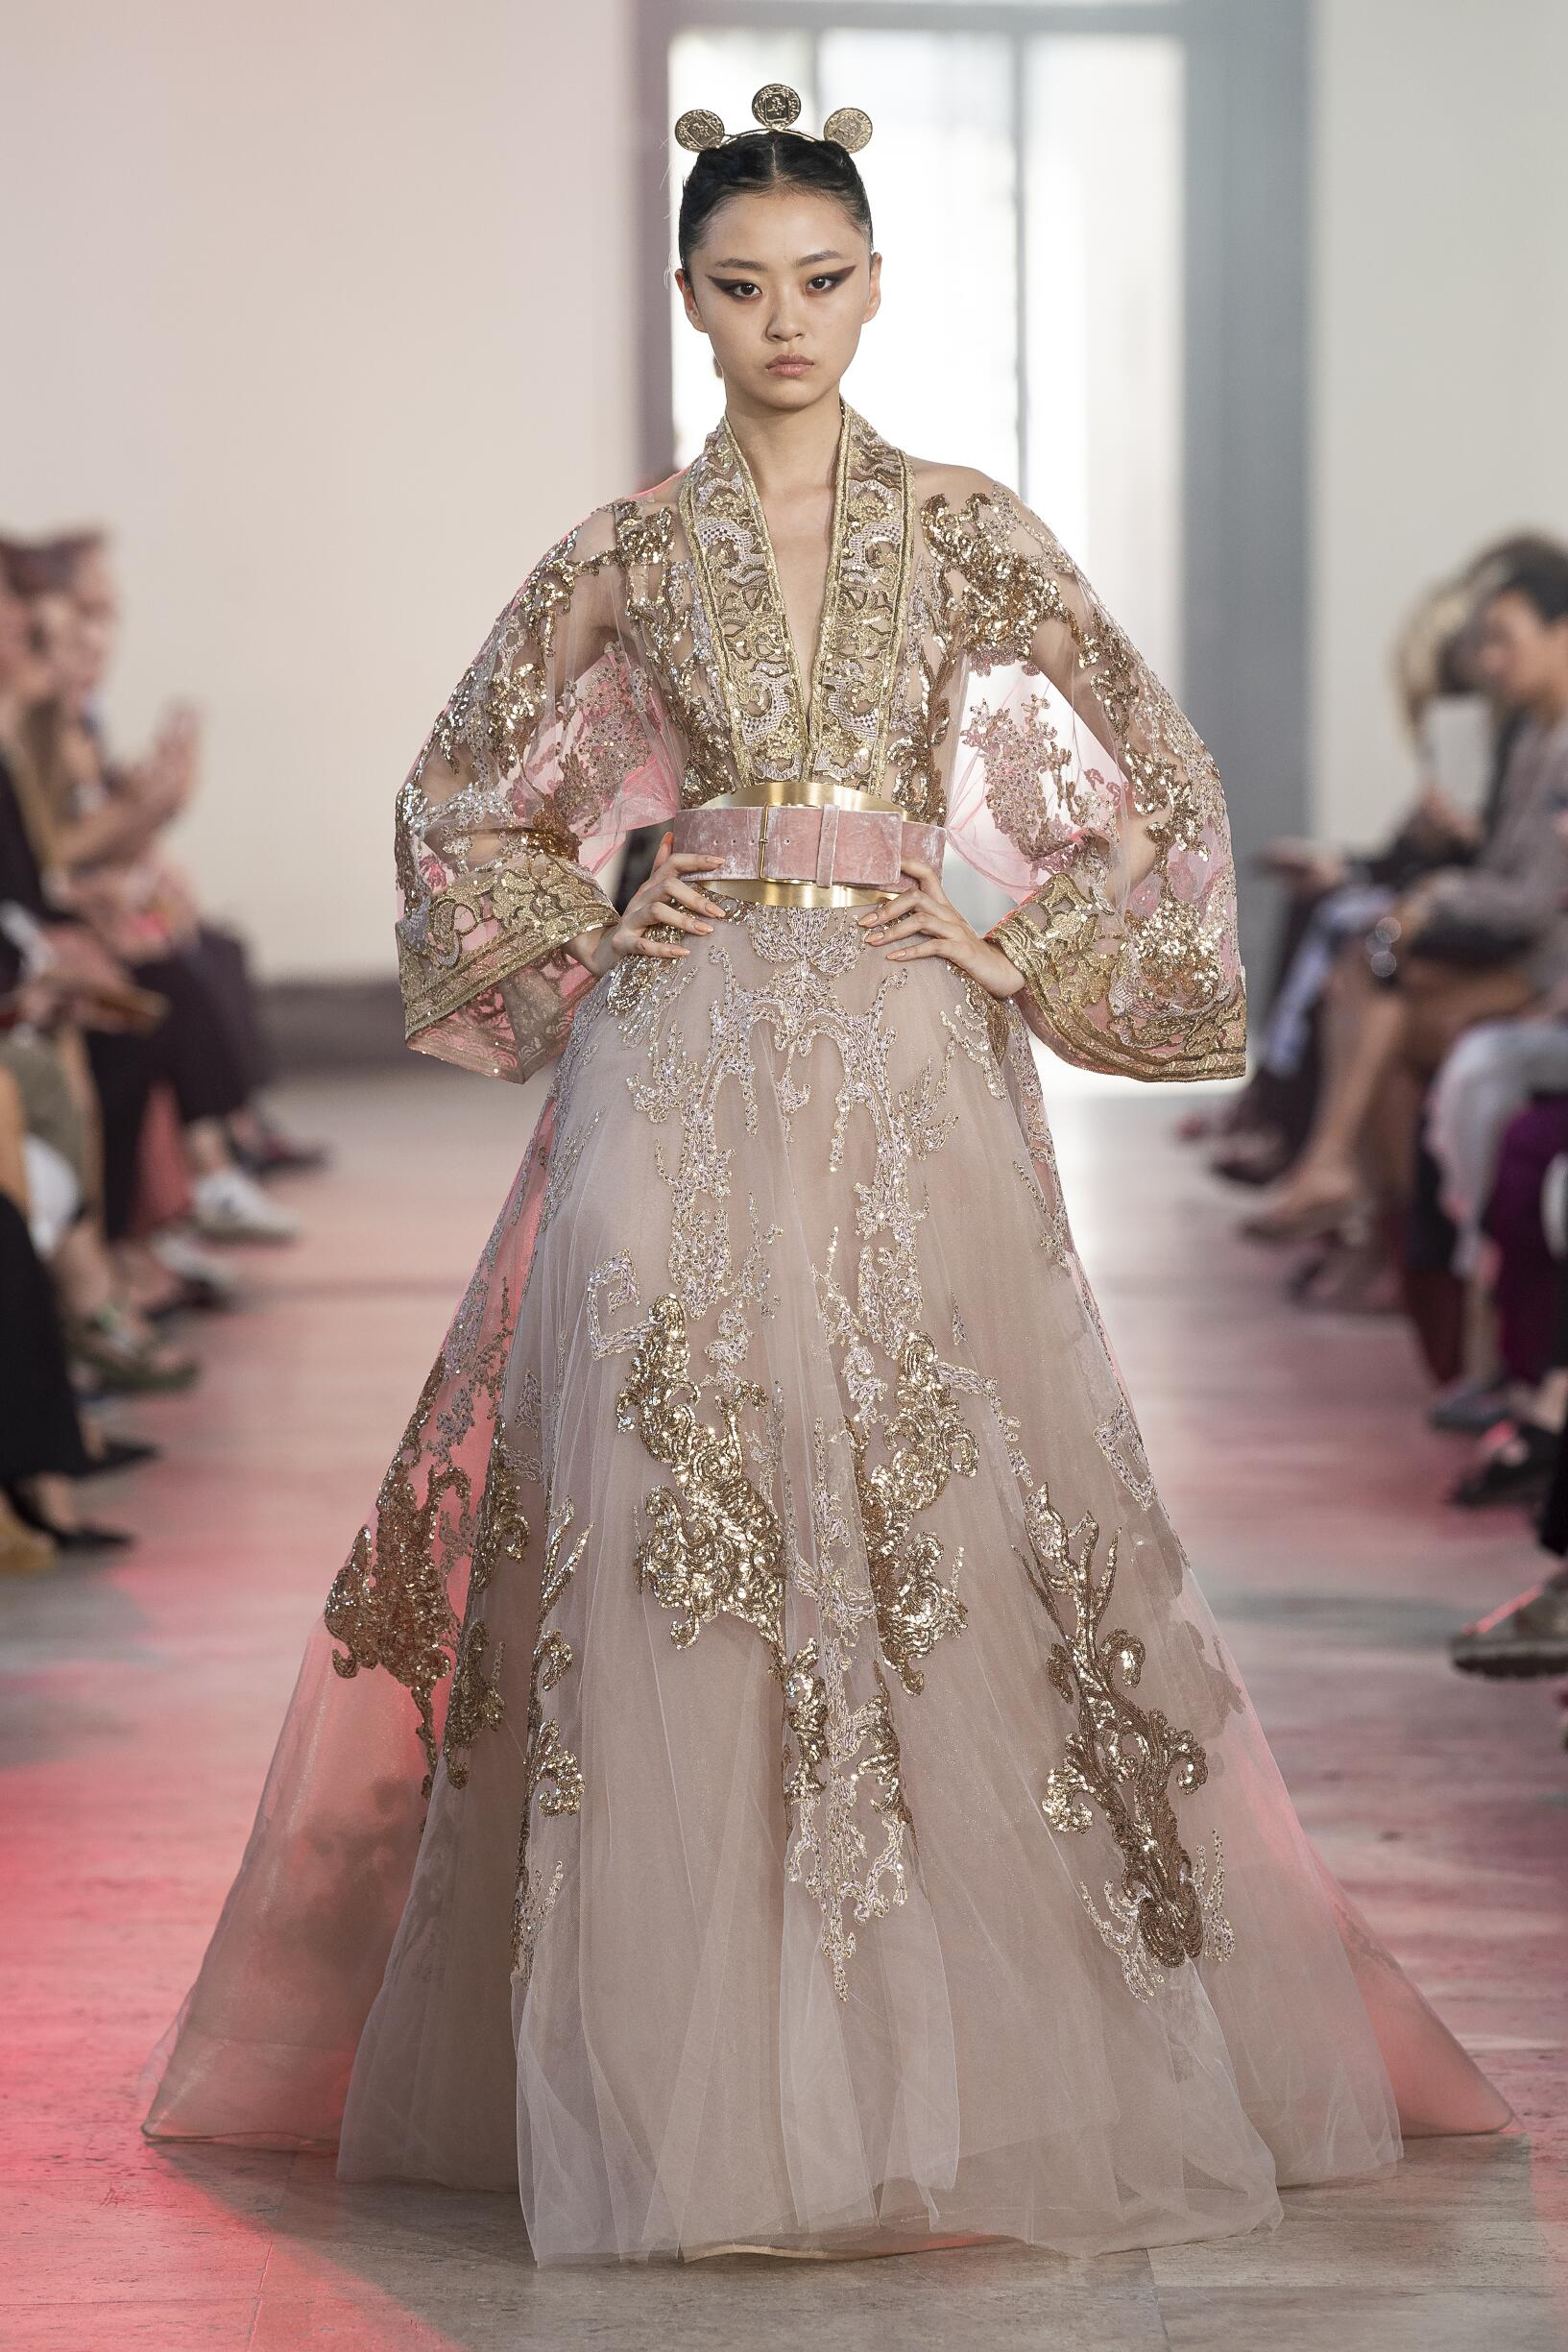 Fall Winter Fashion Trends 2019 Elie Saab Haute Couture